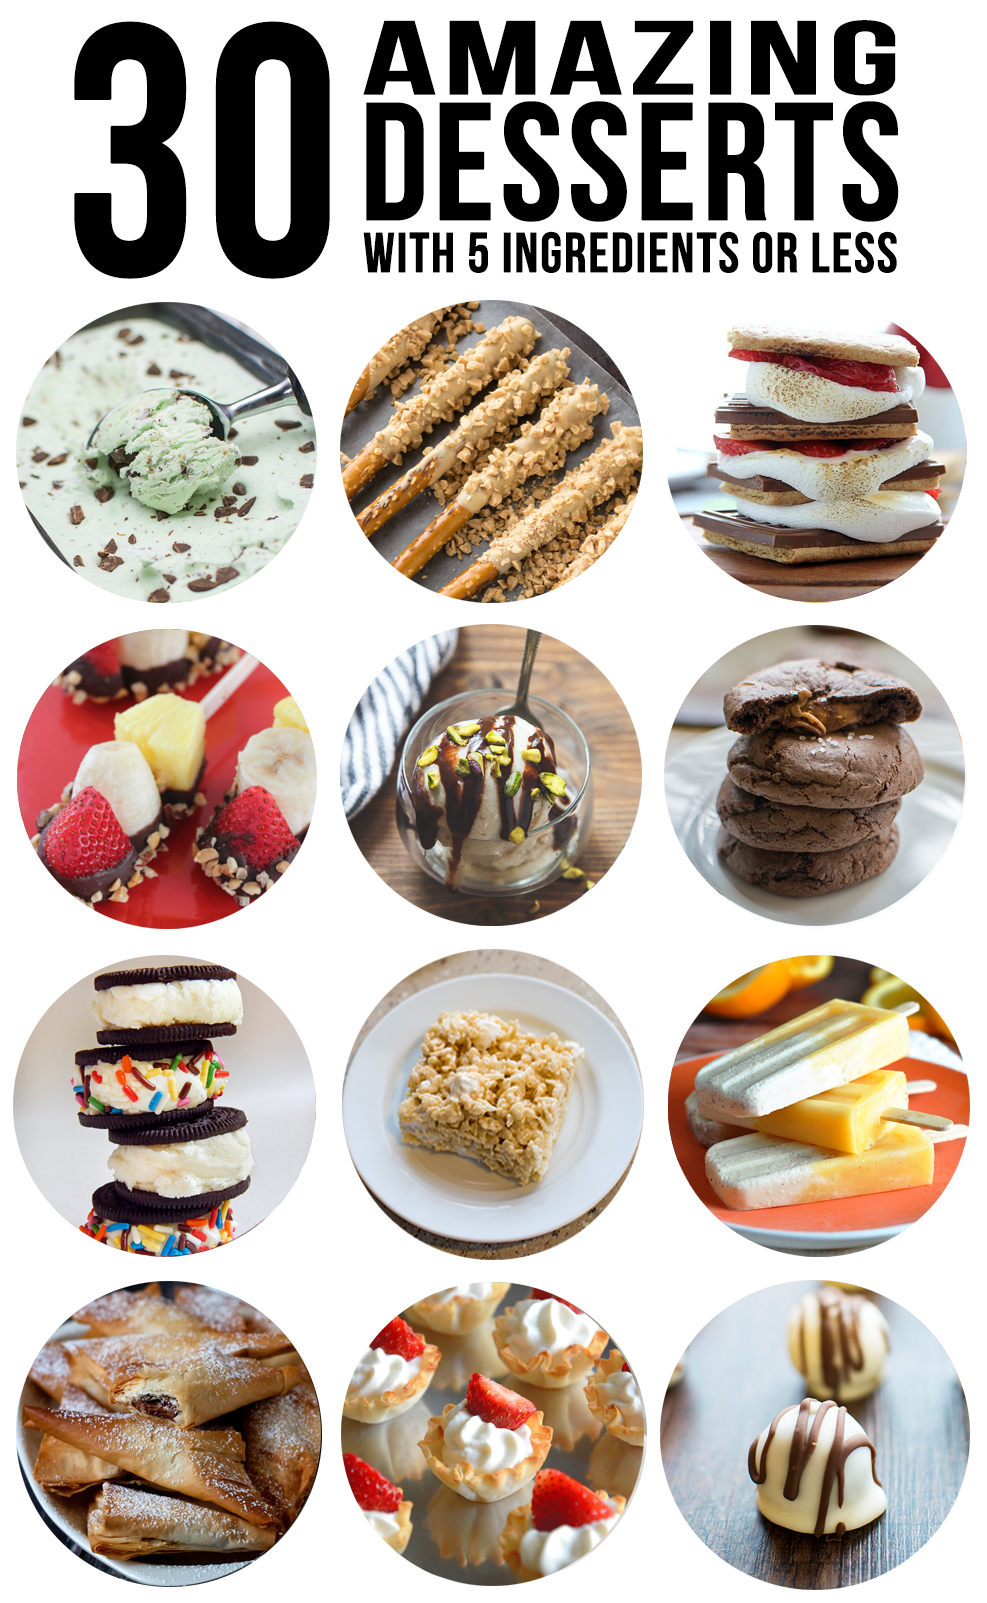 30 amazing desserts with 5 ingredients or less - this great list of 30 delicious sweet treatsthat are easy to make and only 5 ingredients or less. From ice cream, to donuts, to cookies and more!!